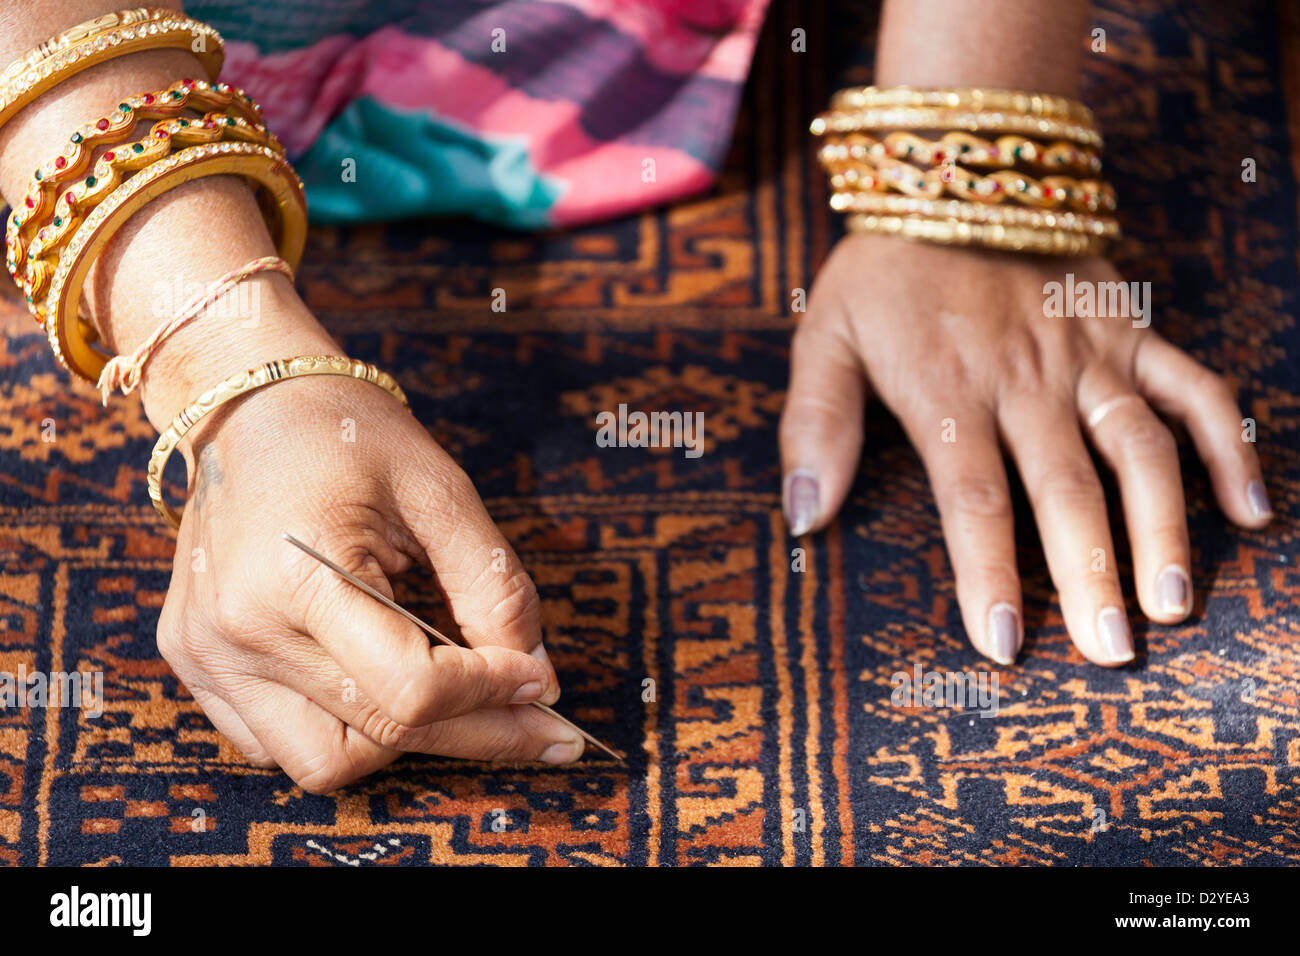 Woman's hands working on rug, Village Women Crafts Store, Ranthambore, Rajasthan, India - Stock Image